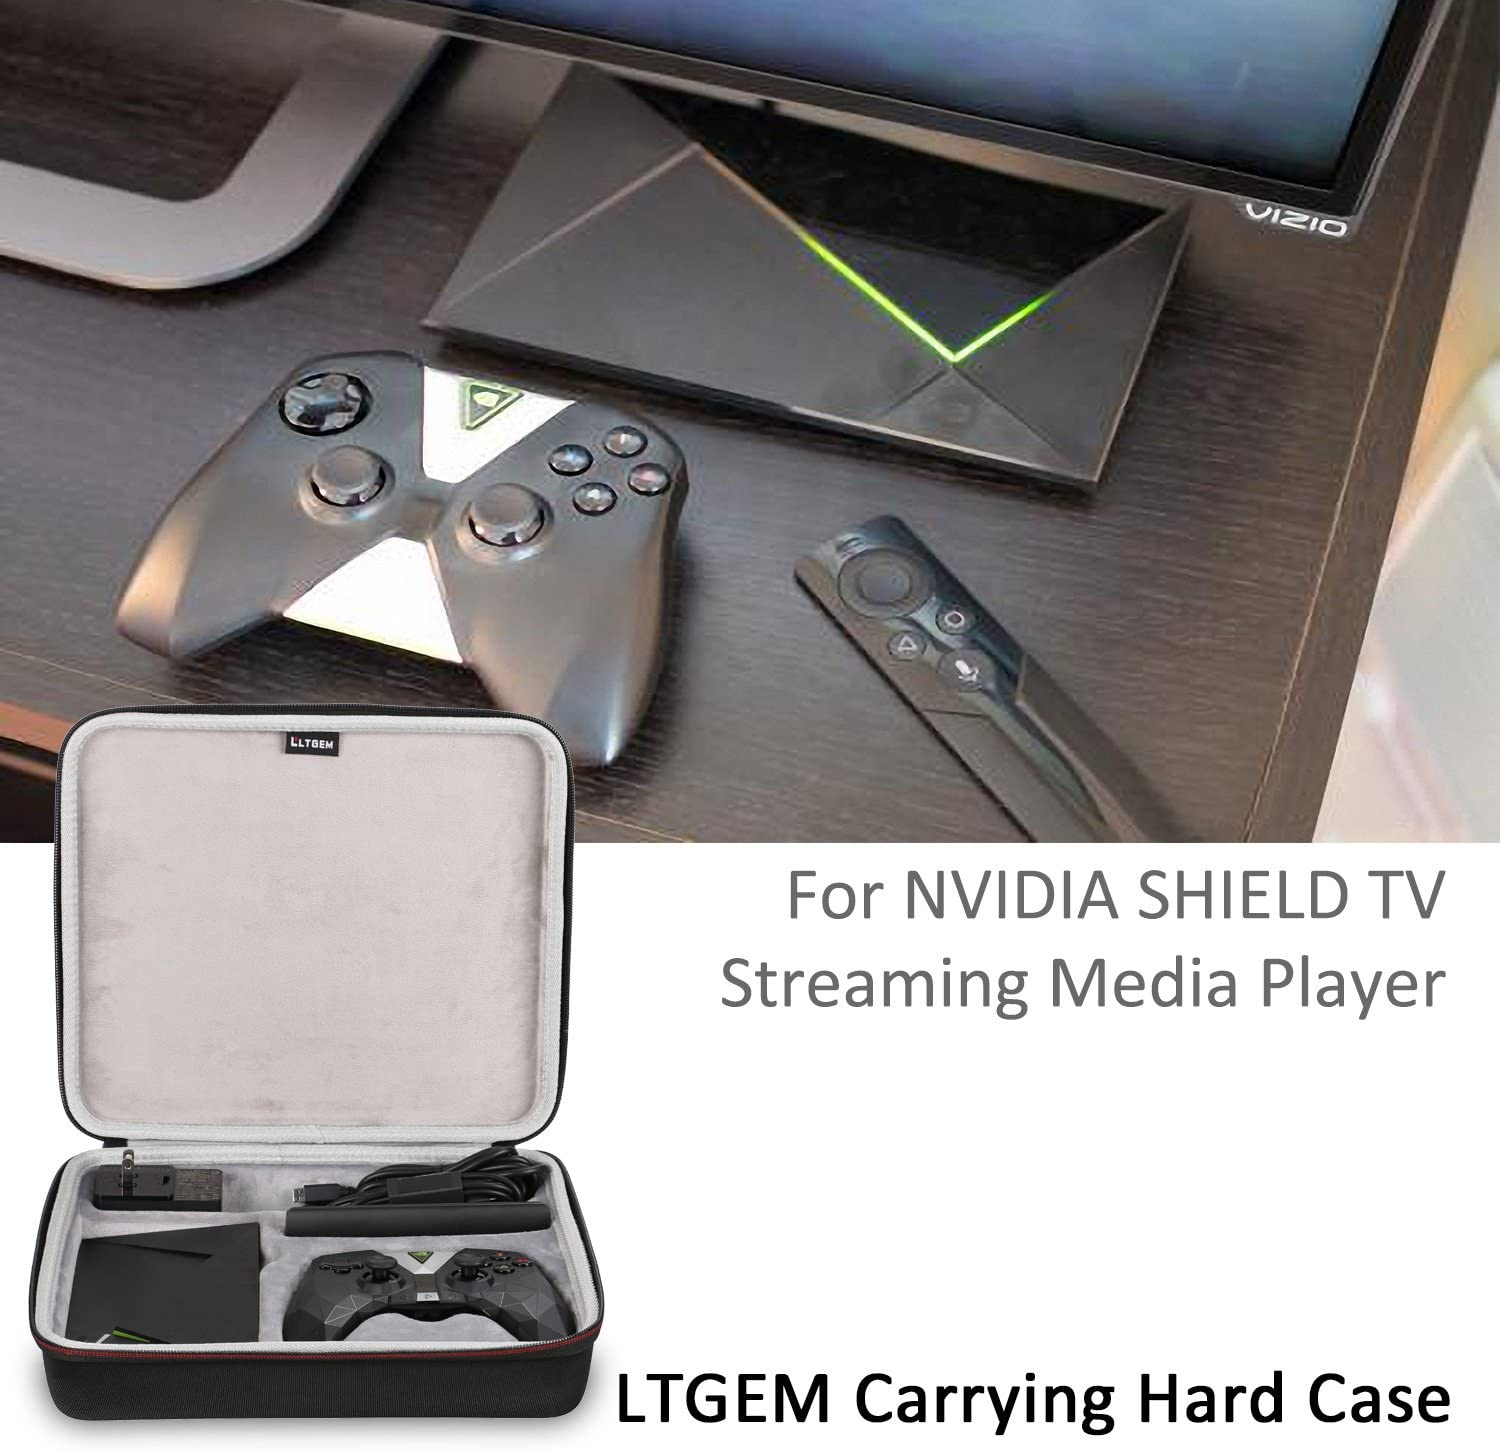 Remote Travel Protective Carrying Case for NVIDIA Shield Media Player Shield Controller LTGEM NVIDIA Shield TV Streaming Media Player Case USB Cable and Charger